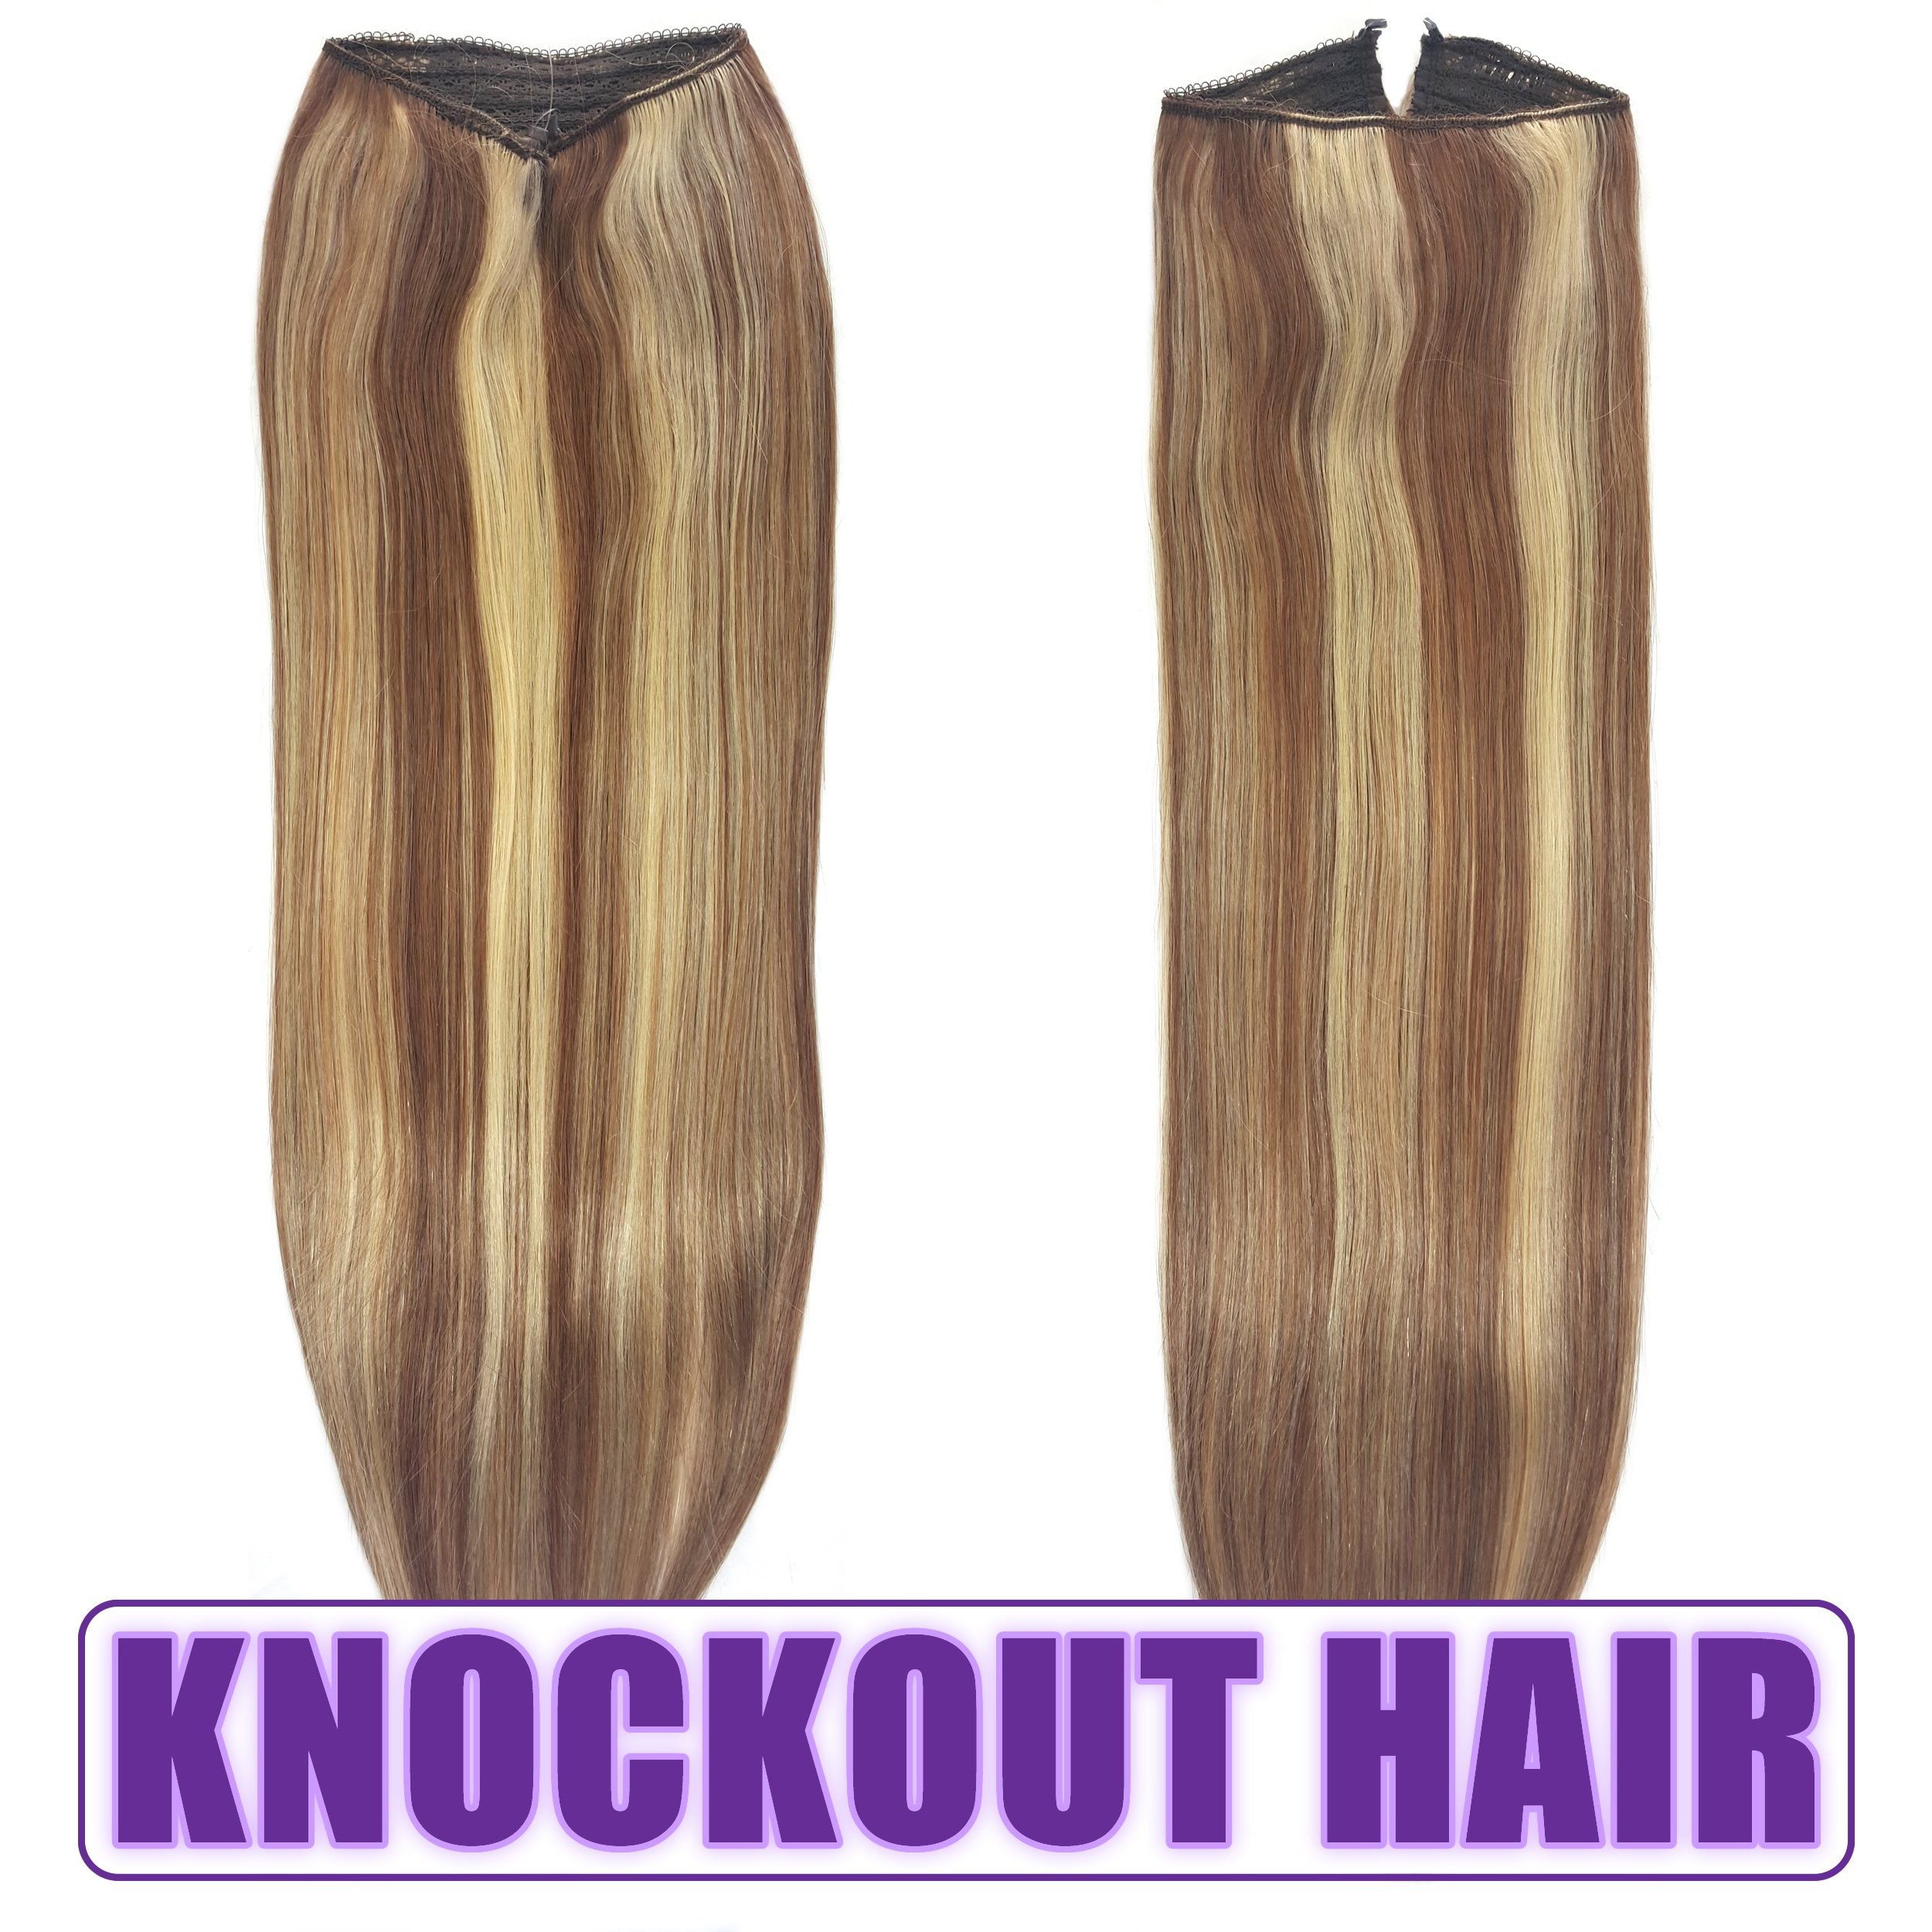 Amazon Fits Like A Halo Hair Extensions 20 22 P7a24 No